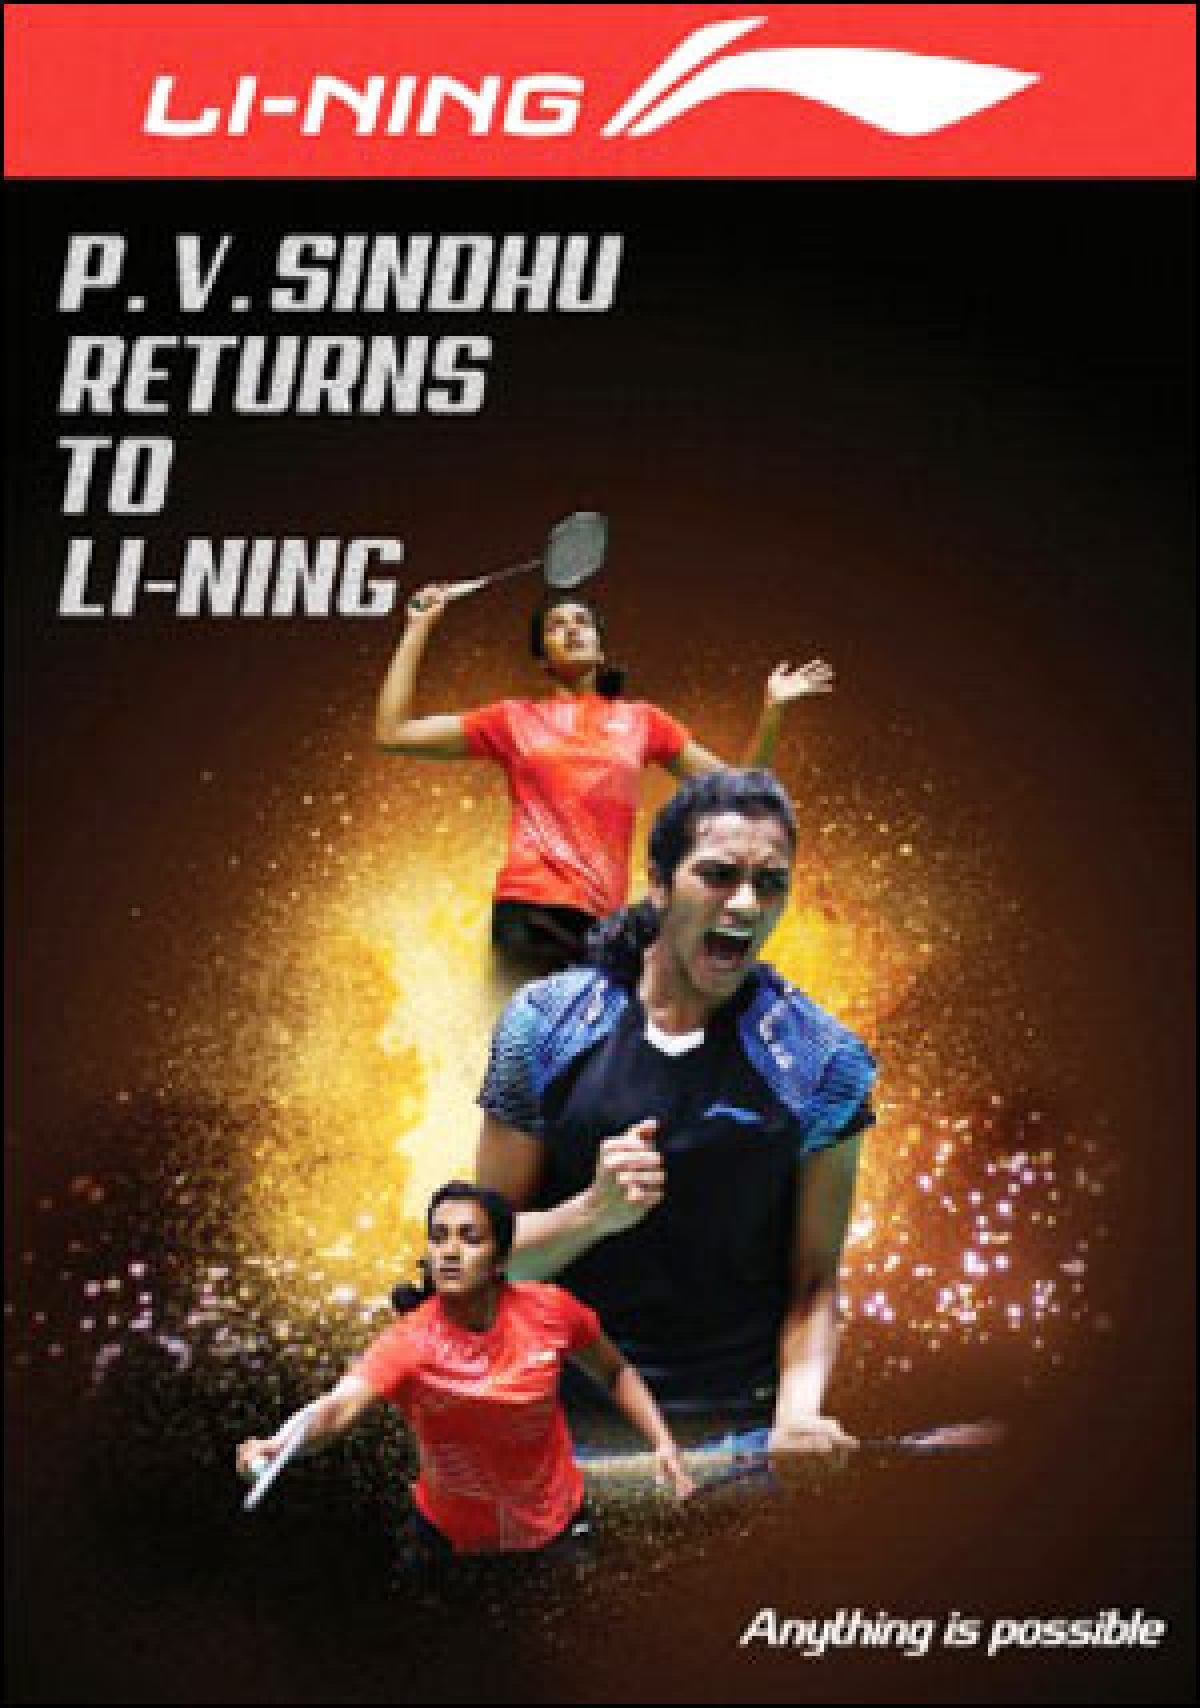 Brands & Badminton: The romance has begun